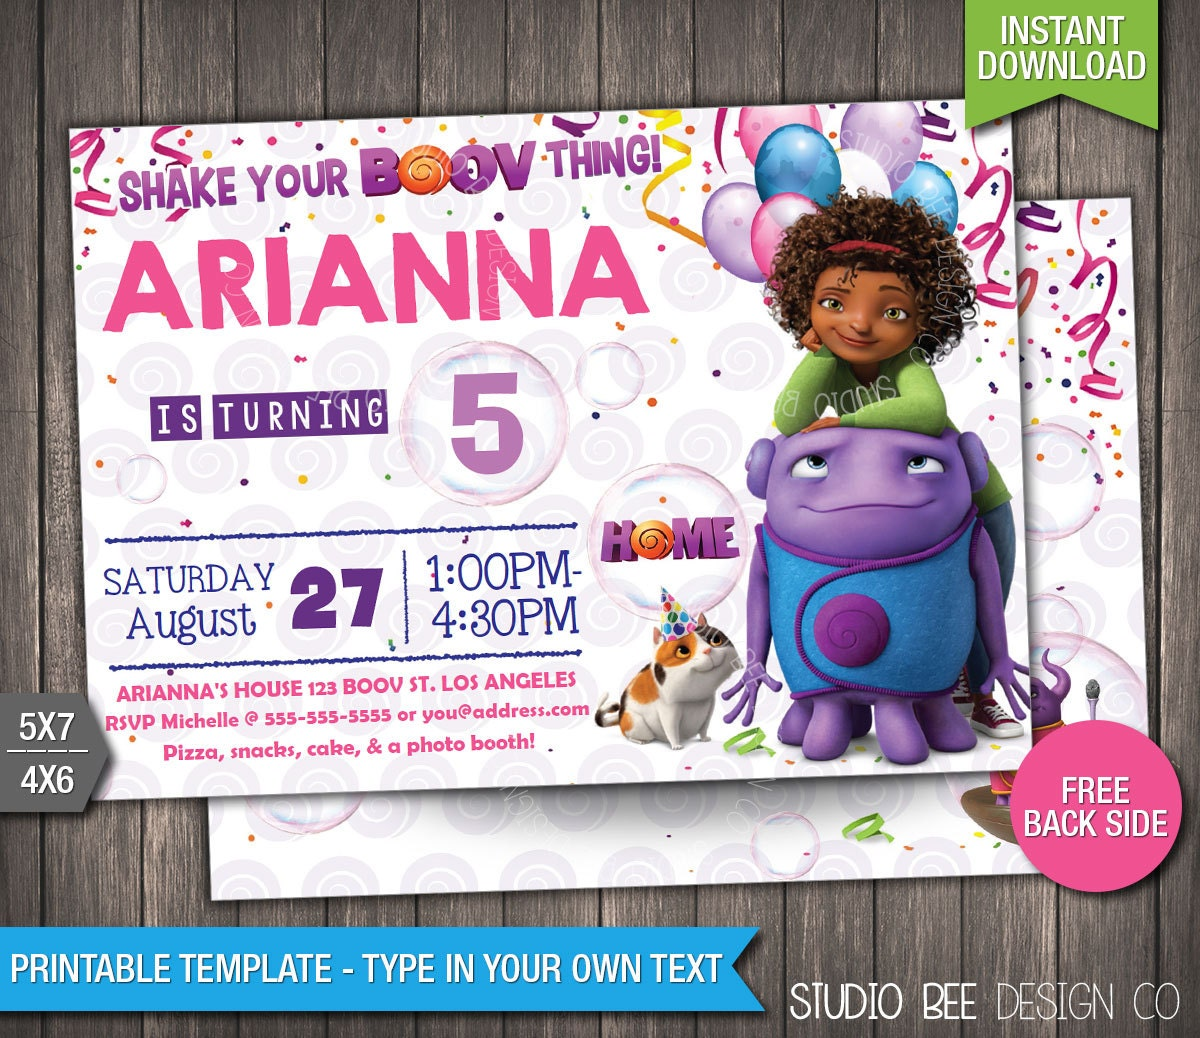 print at home party invitations - Leon.escapers.co